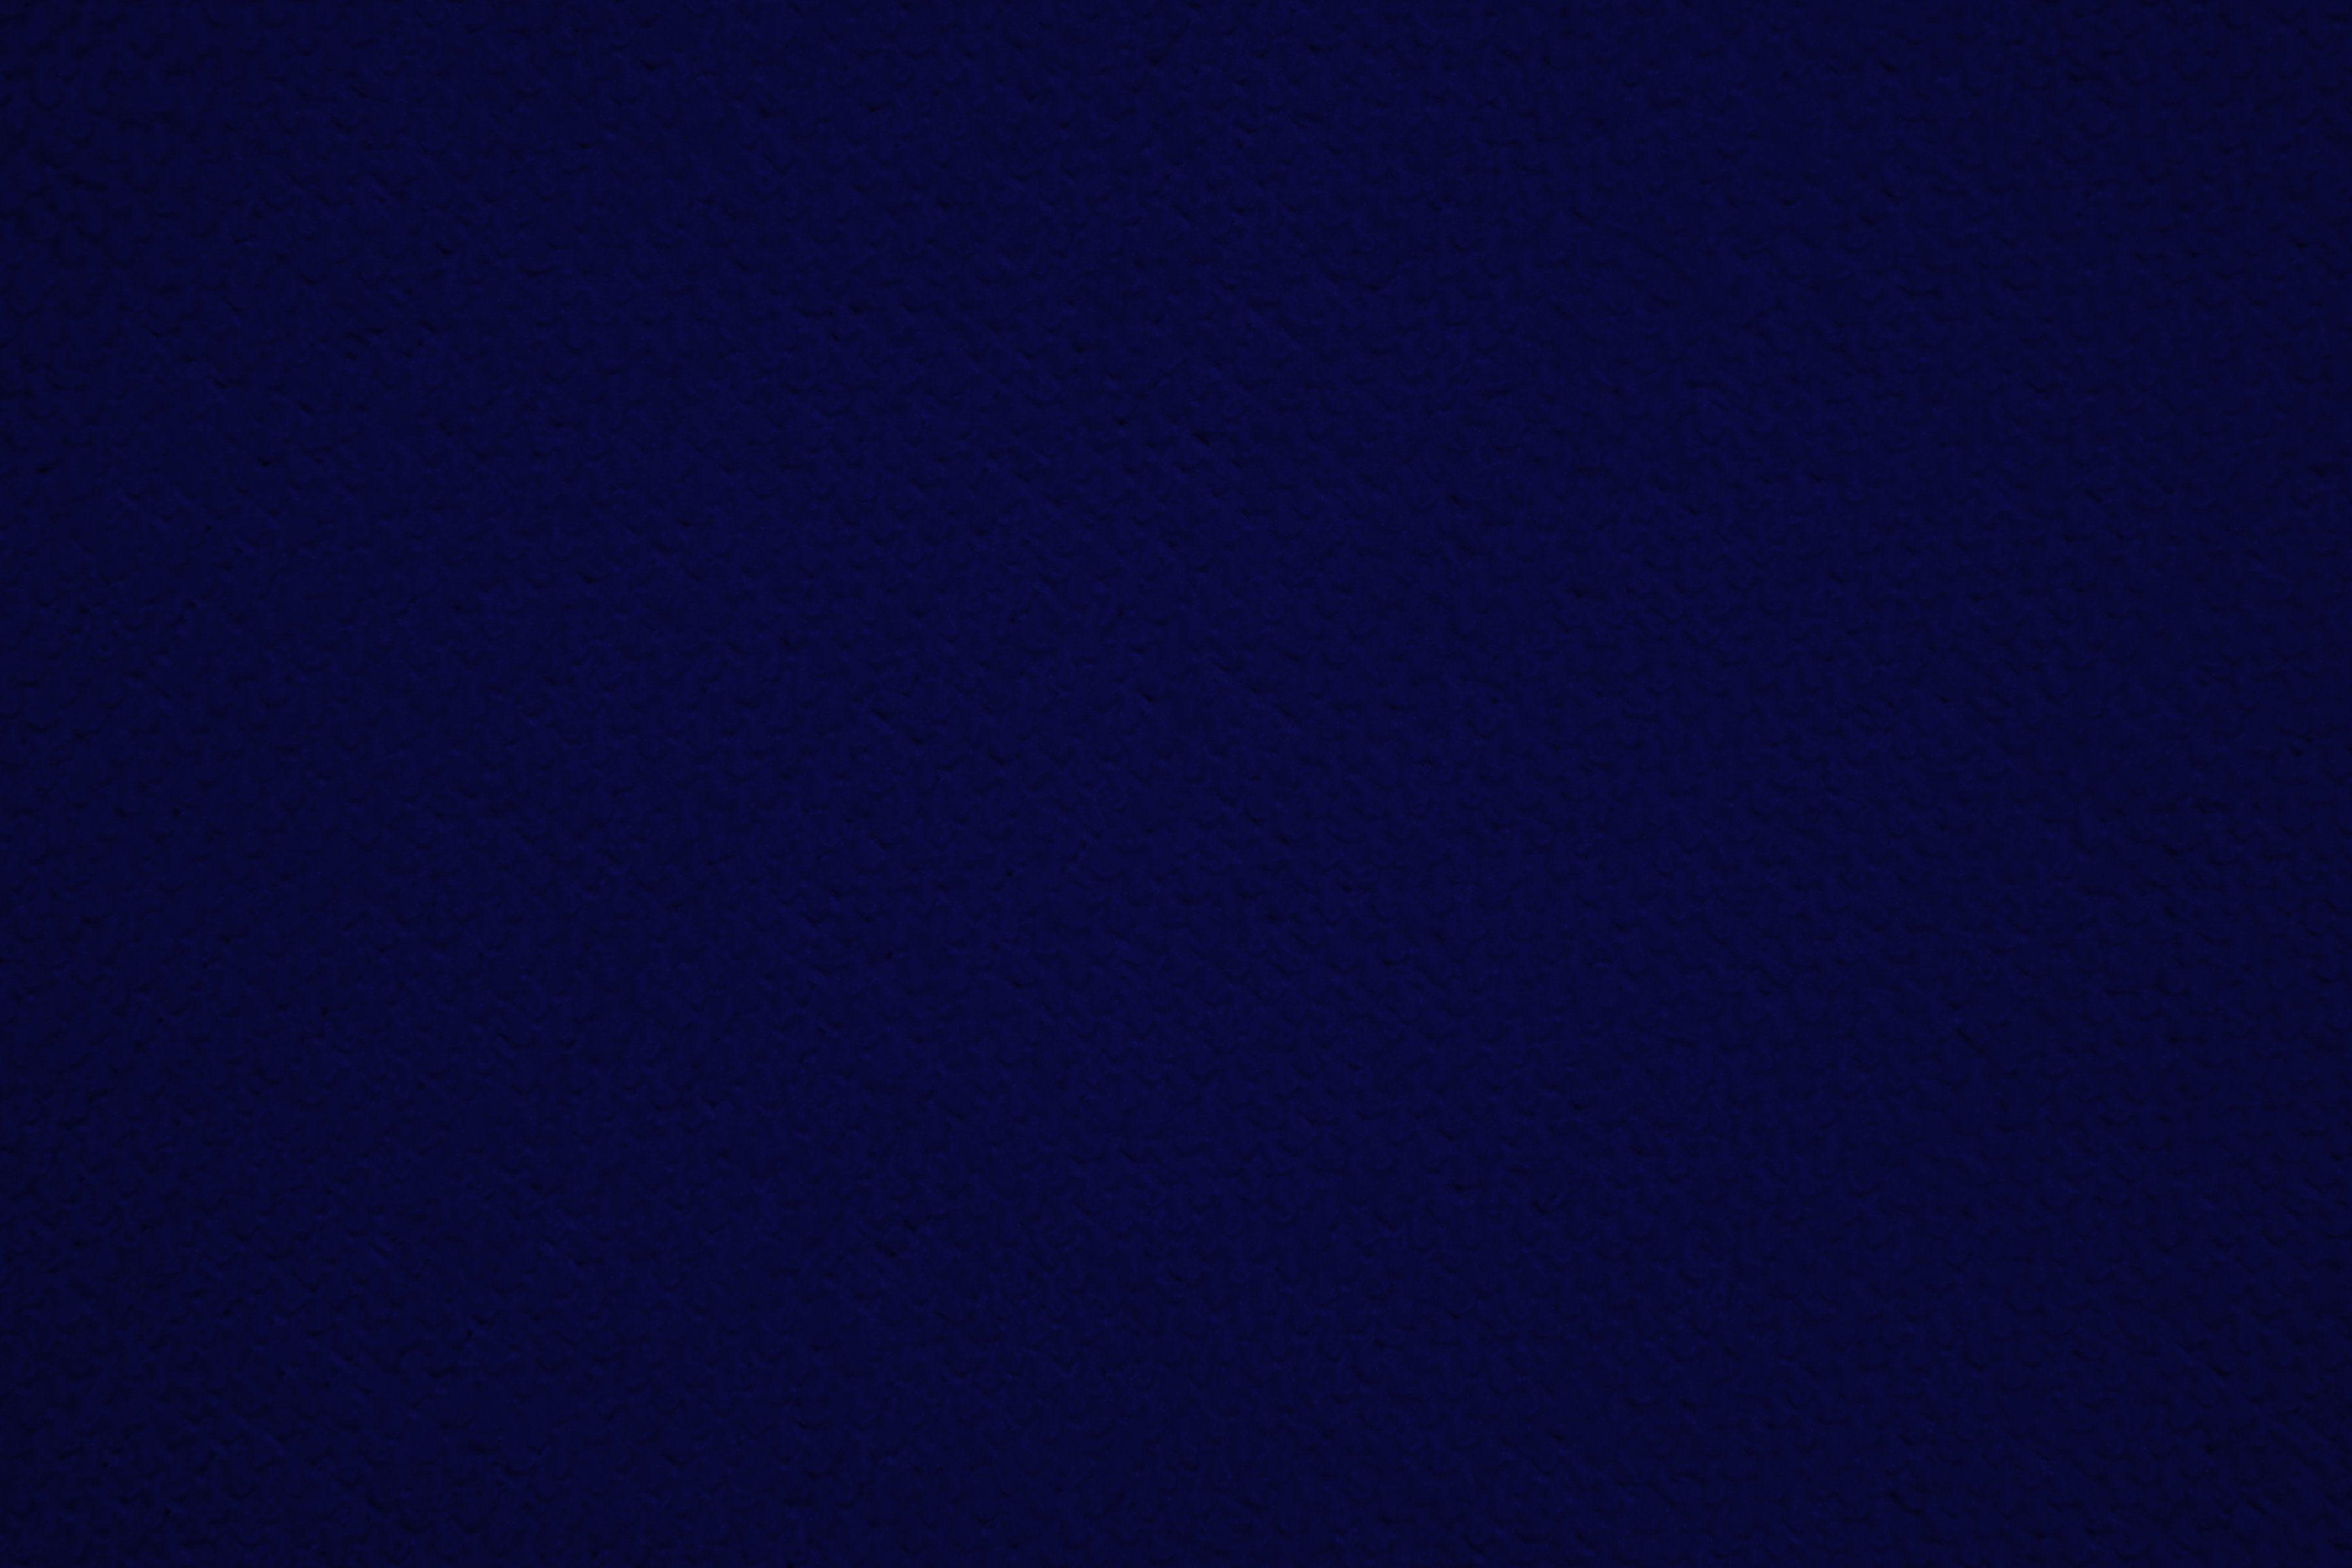 Navy Blue Wallpapers 3600x2400